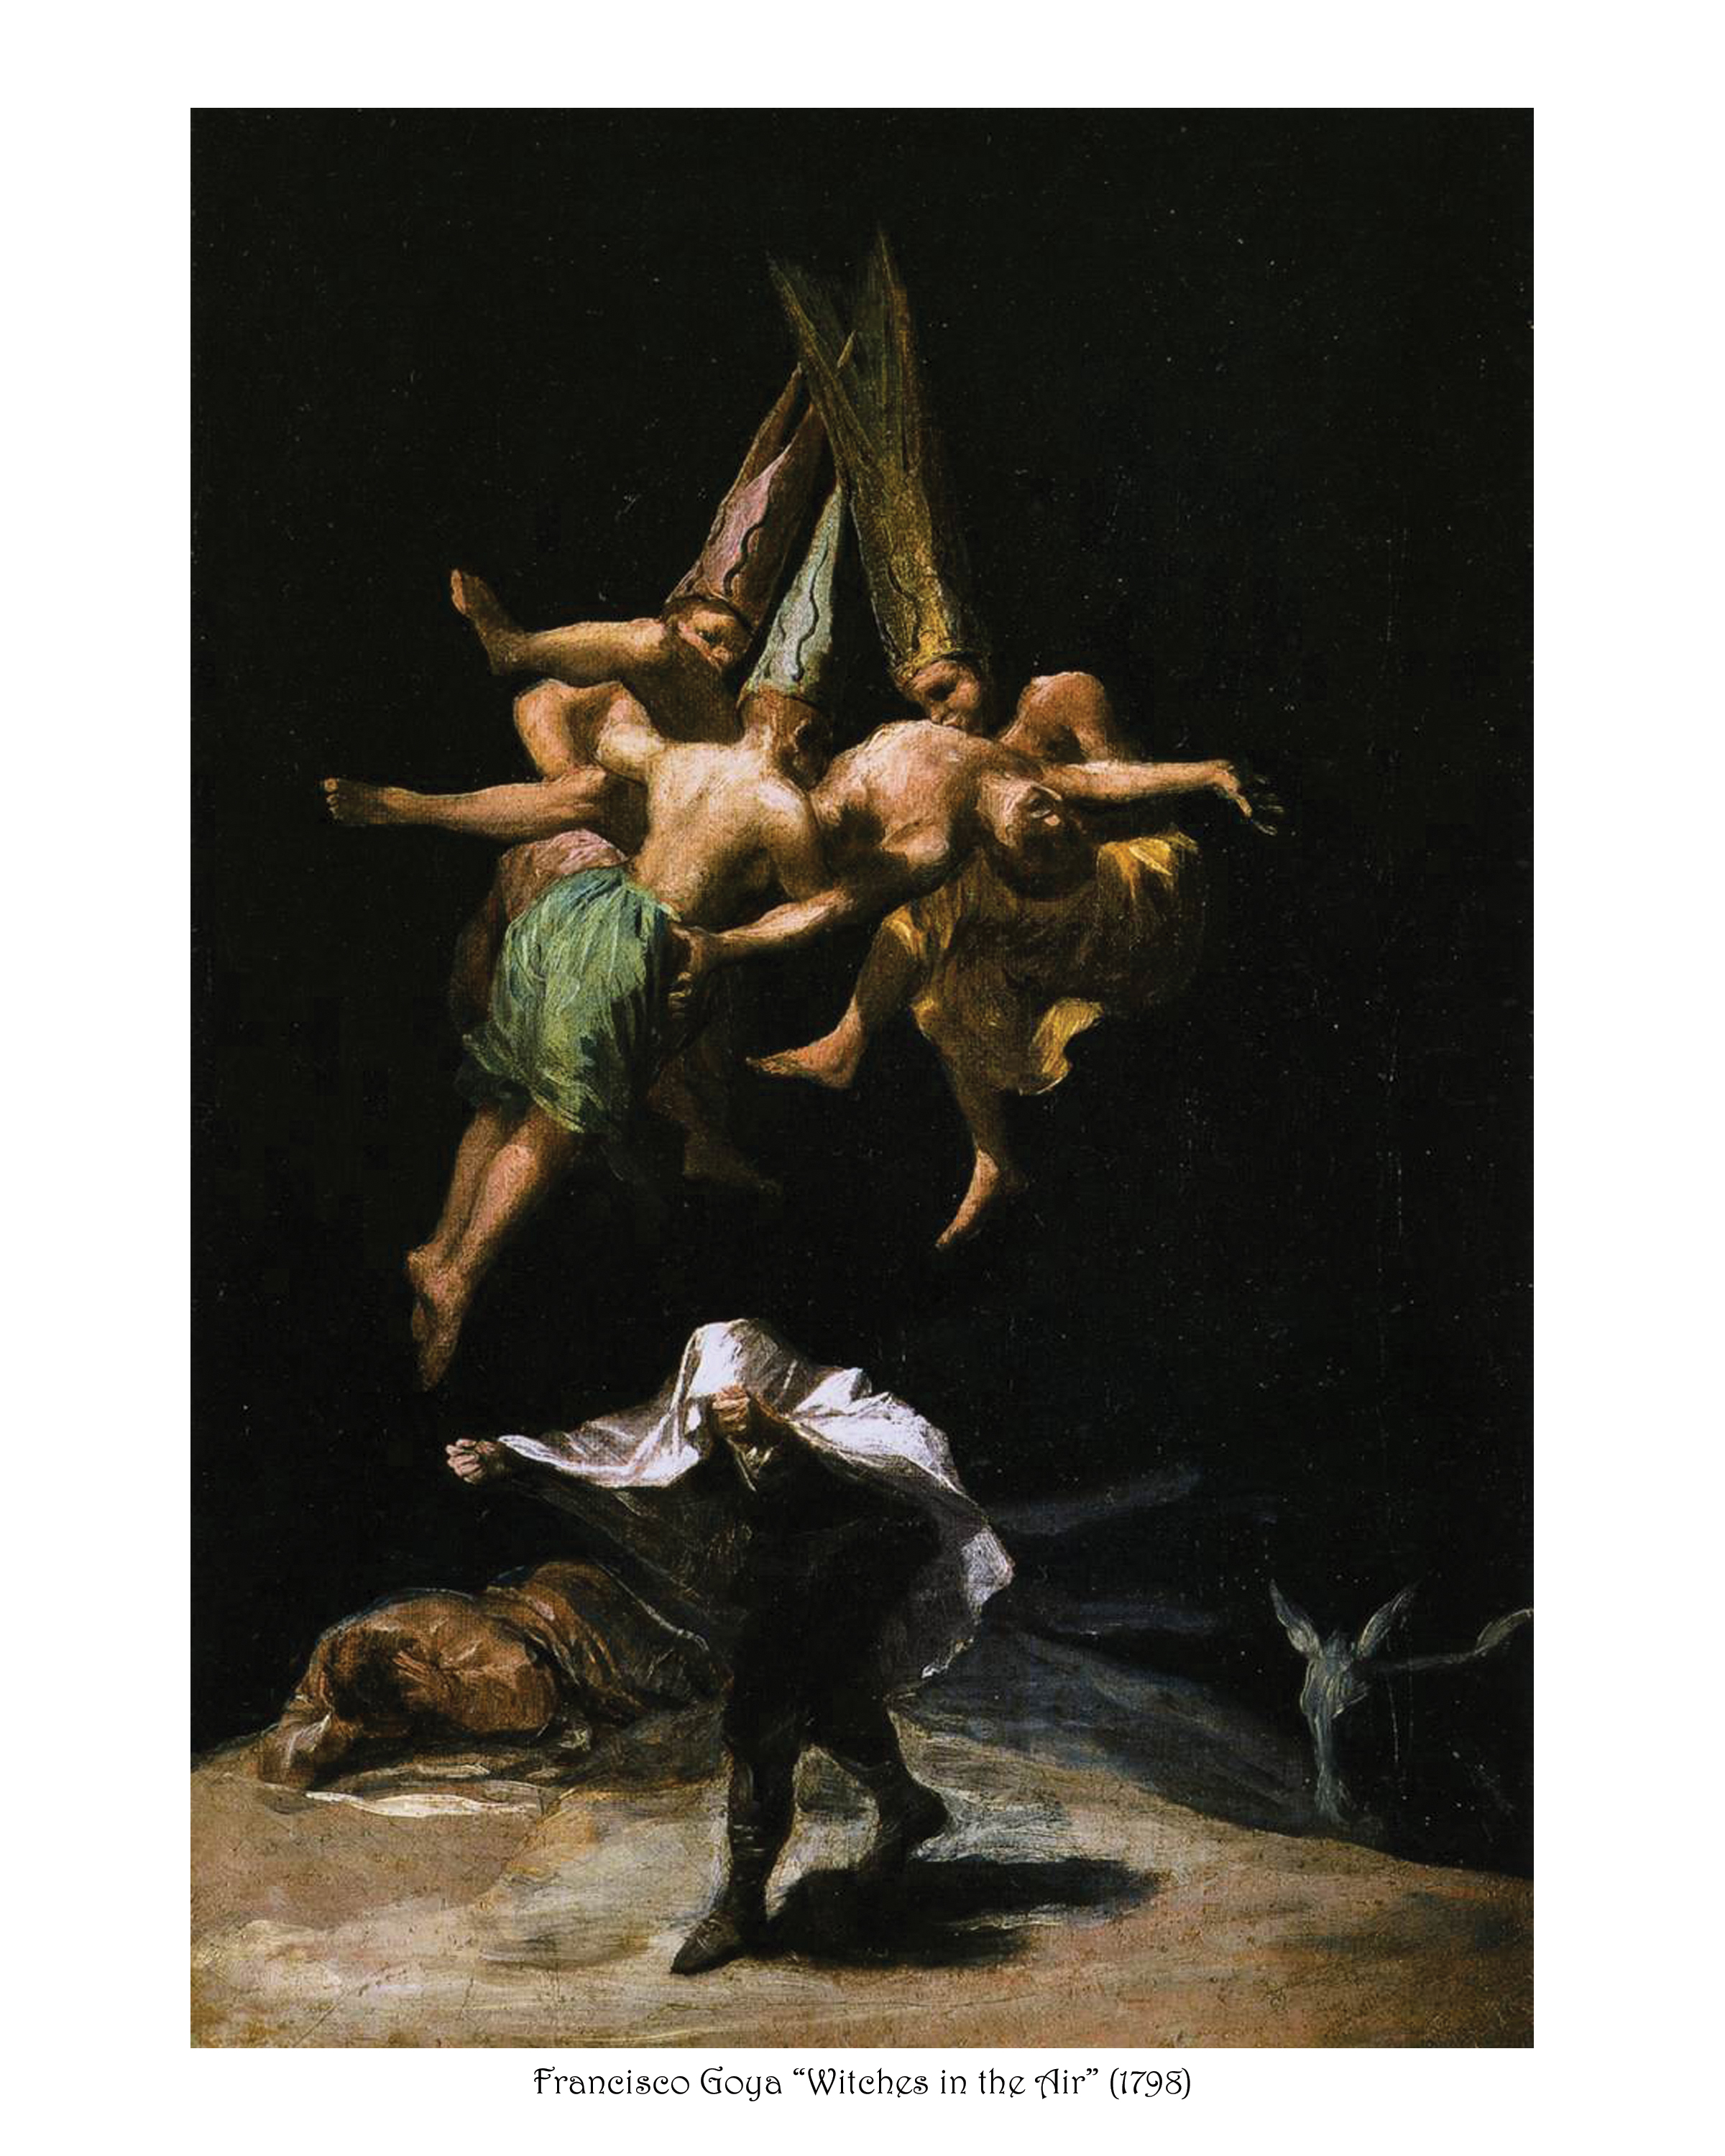 francisco-goya-witches-in-the-air-1798